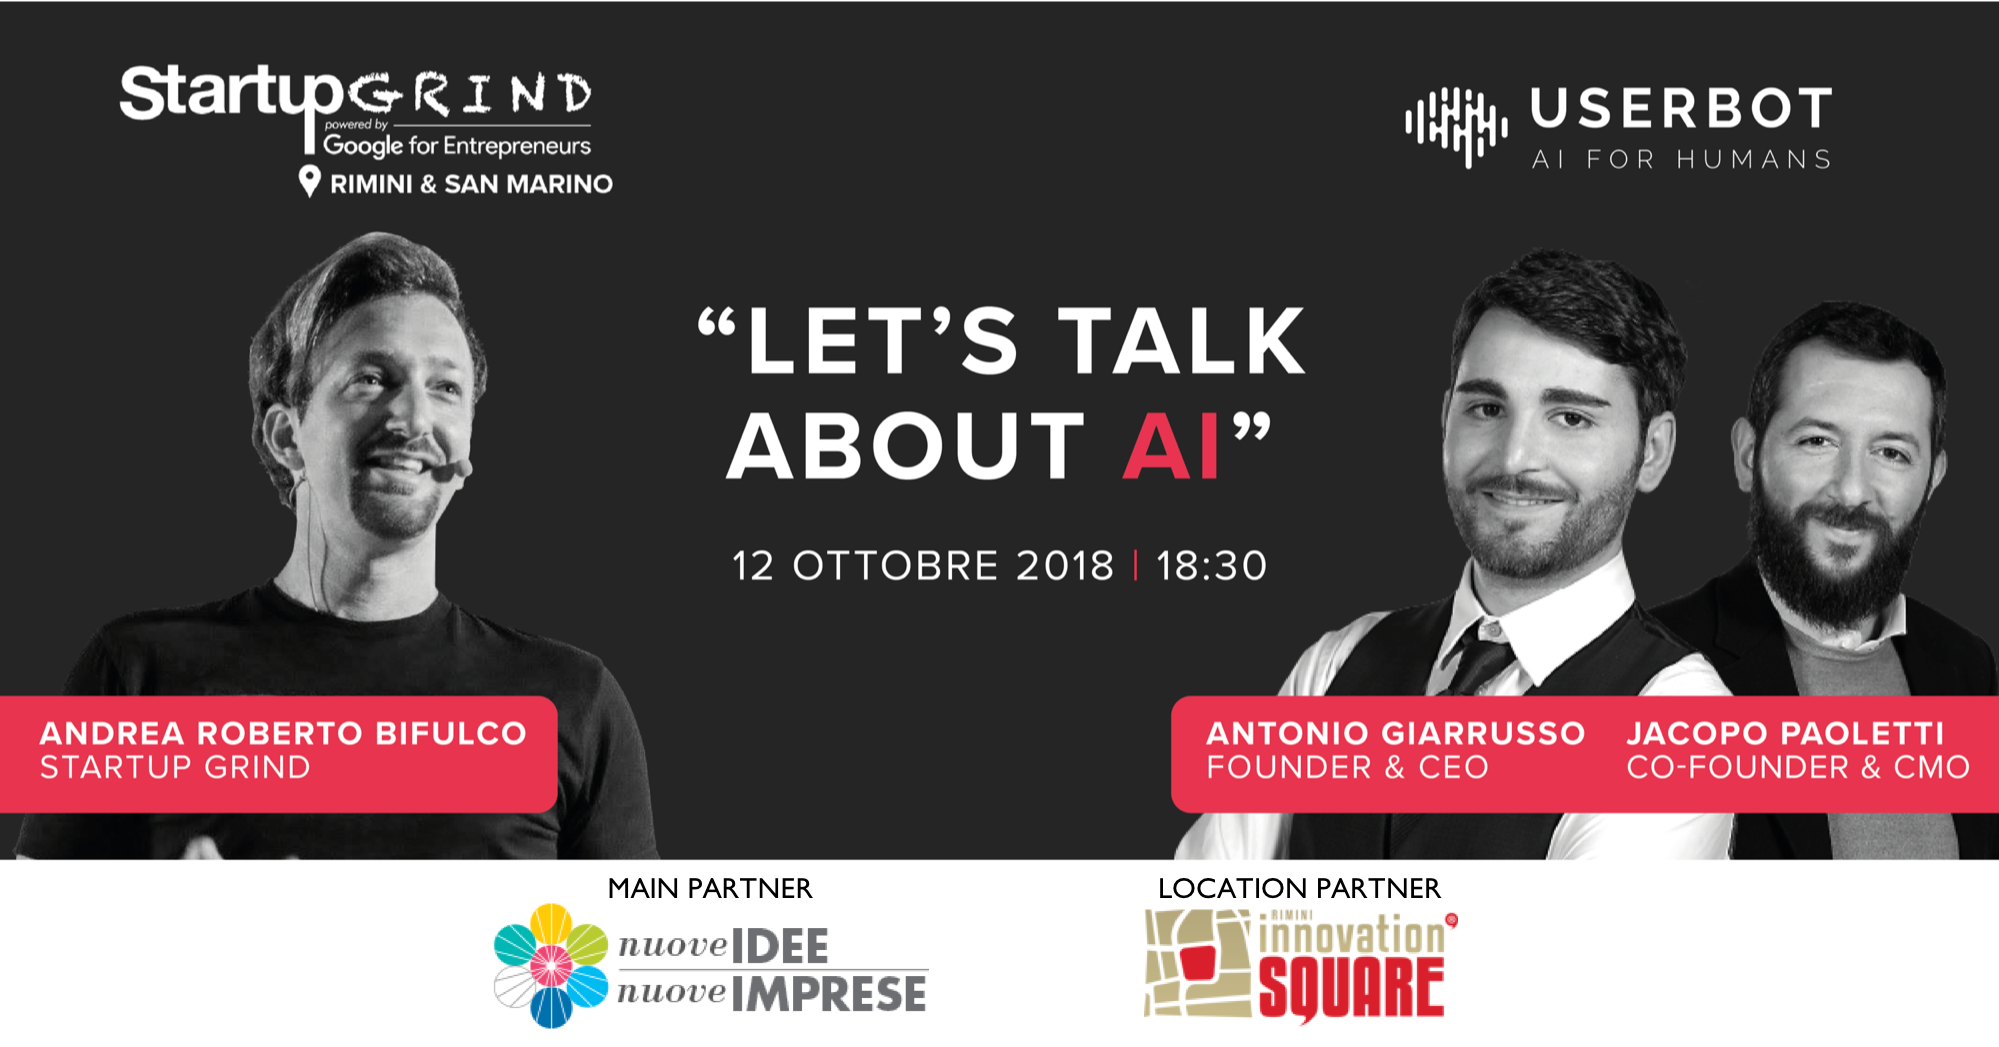 unnamed - 12 ottobre Startup Grind: intelligenza artificiale? Ne parliamo con Userbot a Rimini Innovation Square